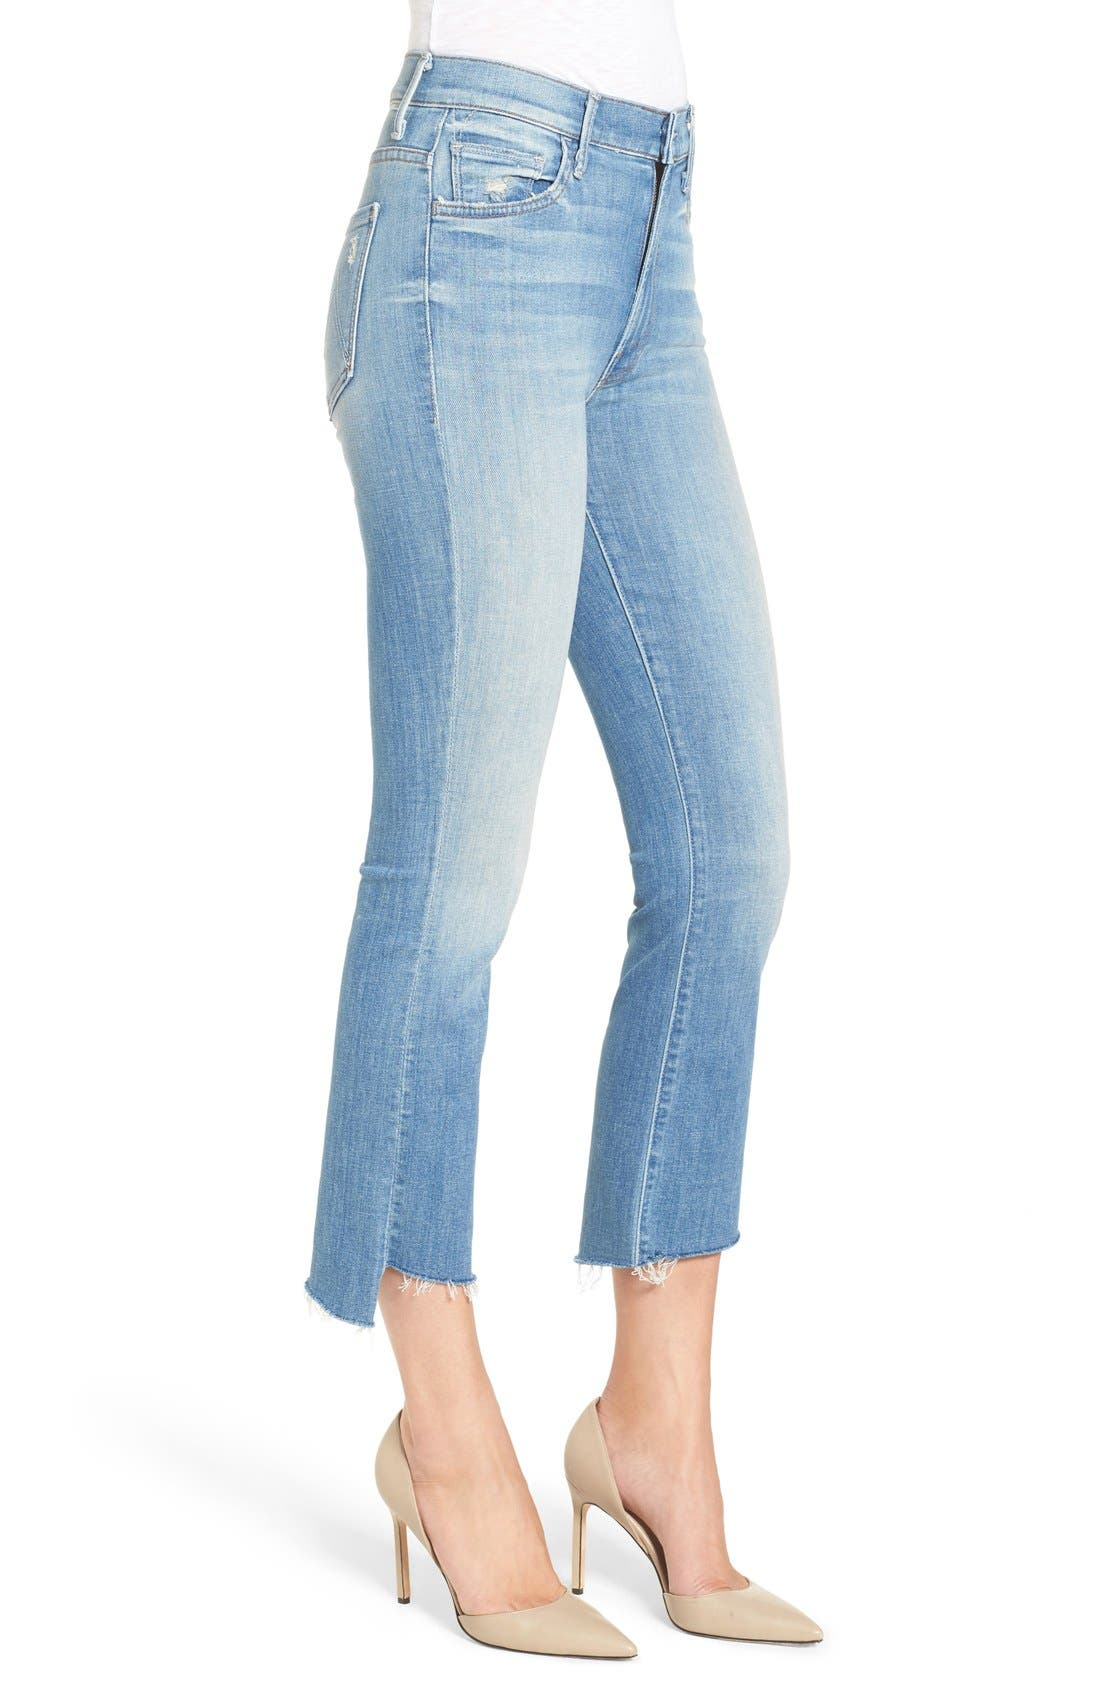 'The Insider' Crop Step Fray Jeans,                             Alternate thumbnail 3, color,                             SHAKE WELL